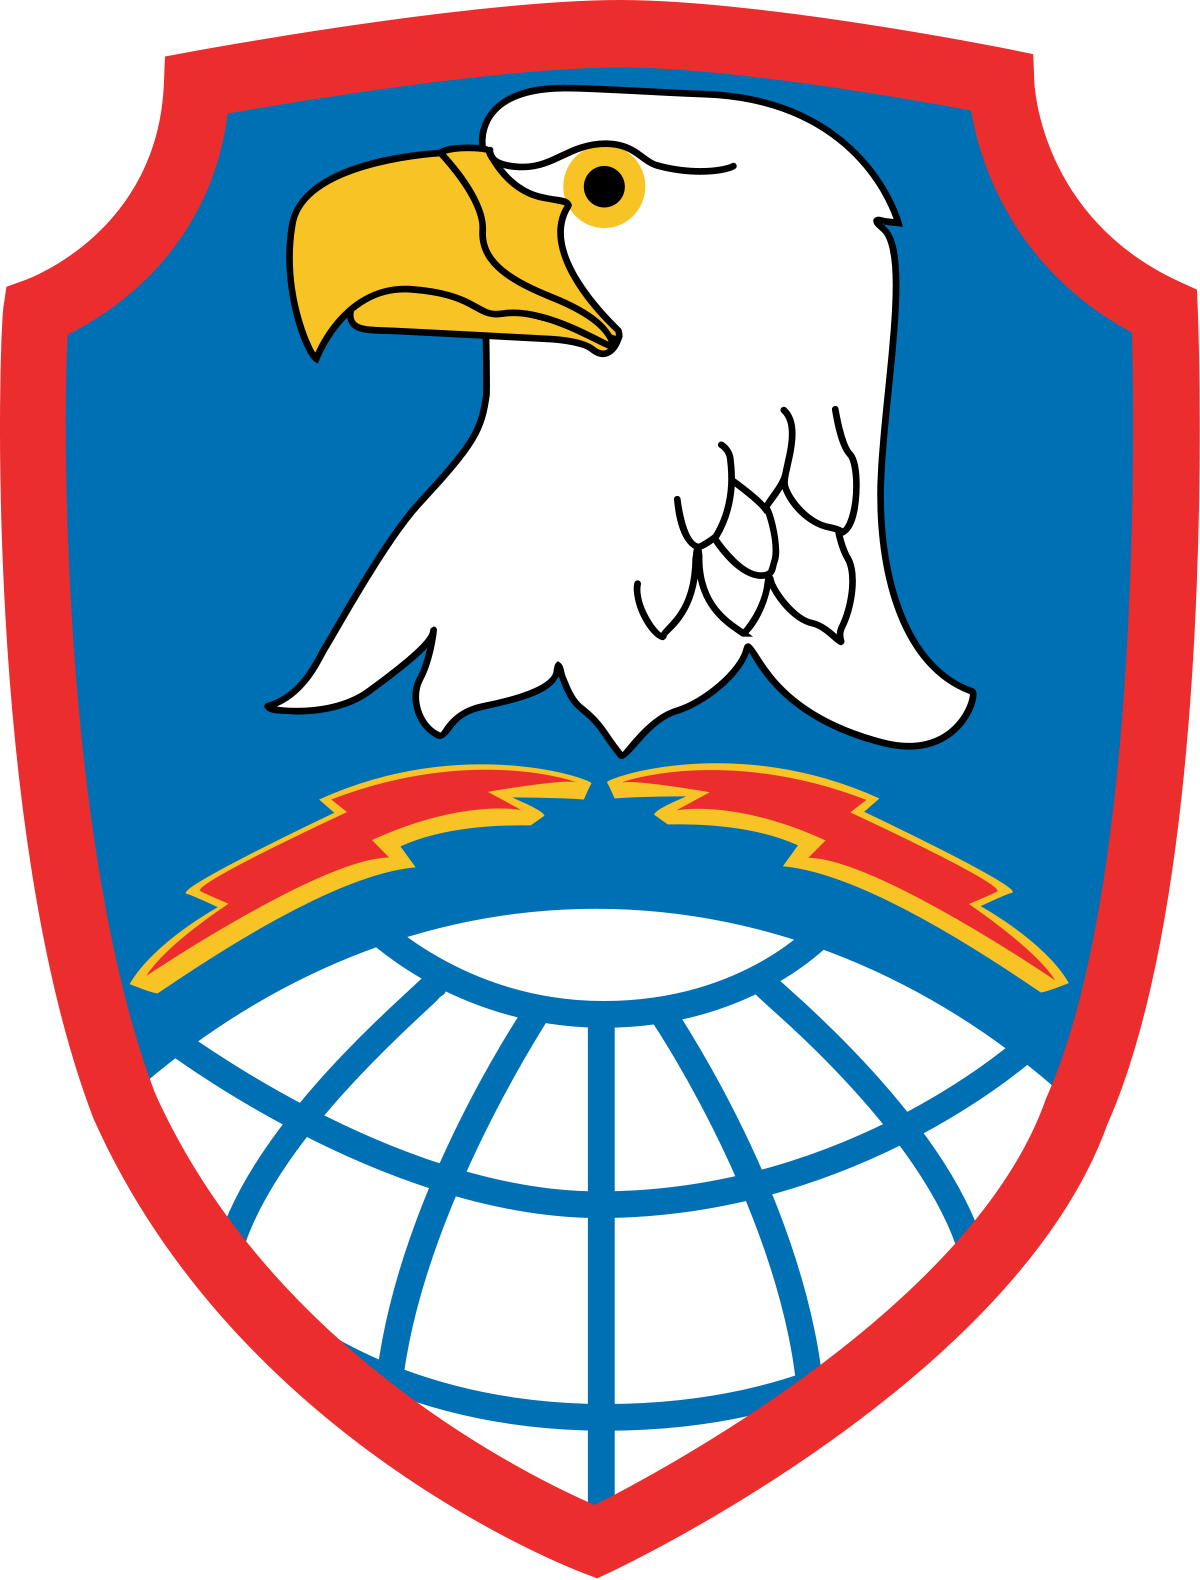 United States Army Space and Missile Defense Command.